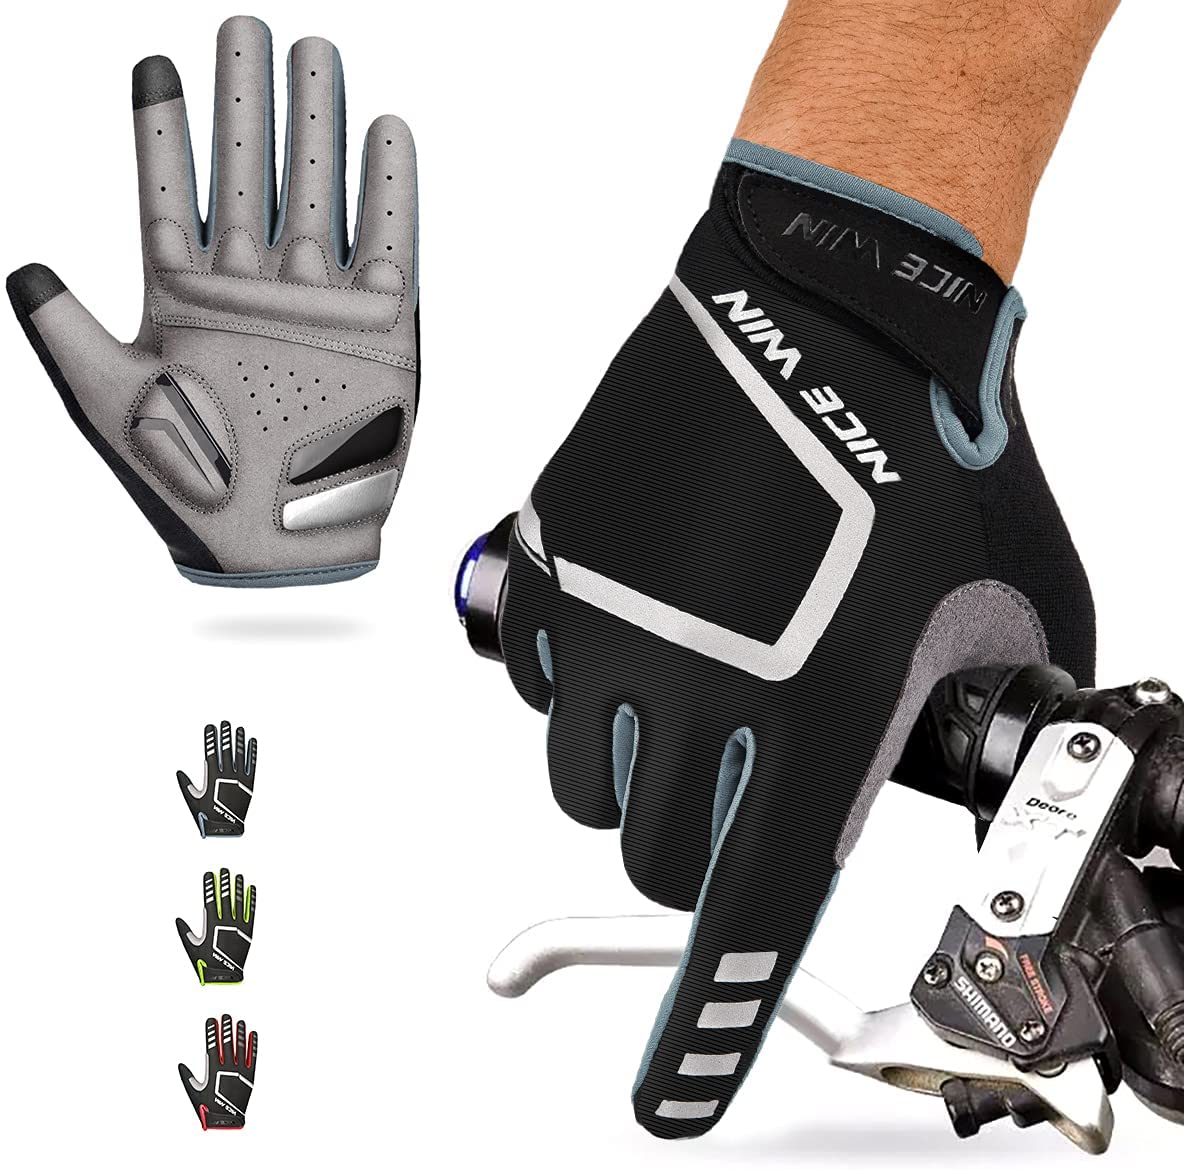 Mountain bike gloves provide a more comfortable grip with less friction and less sweat.